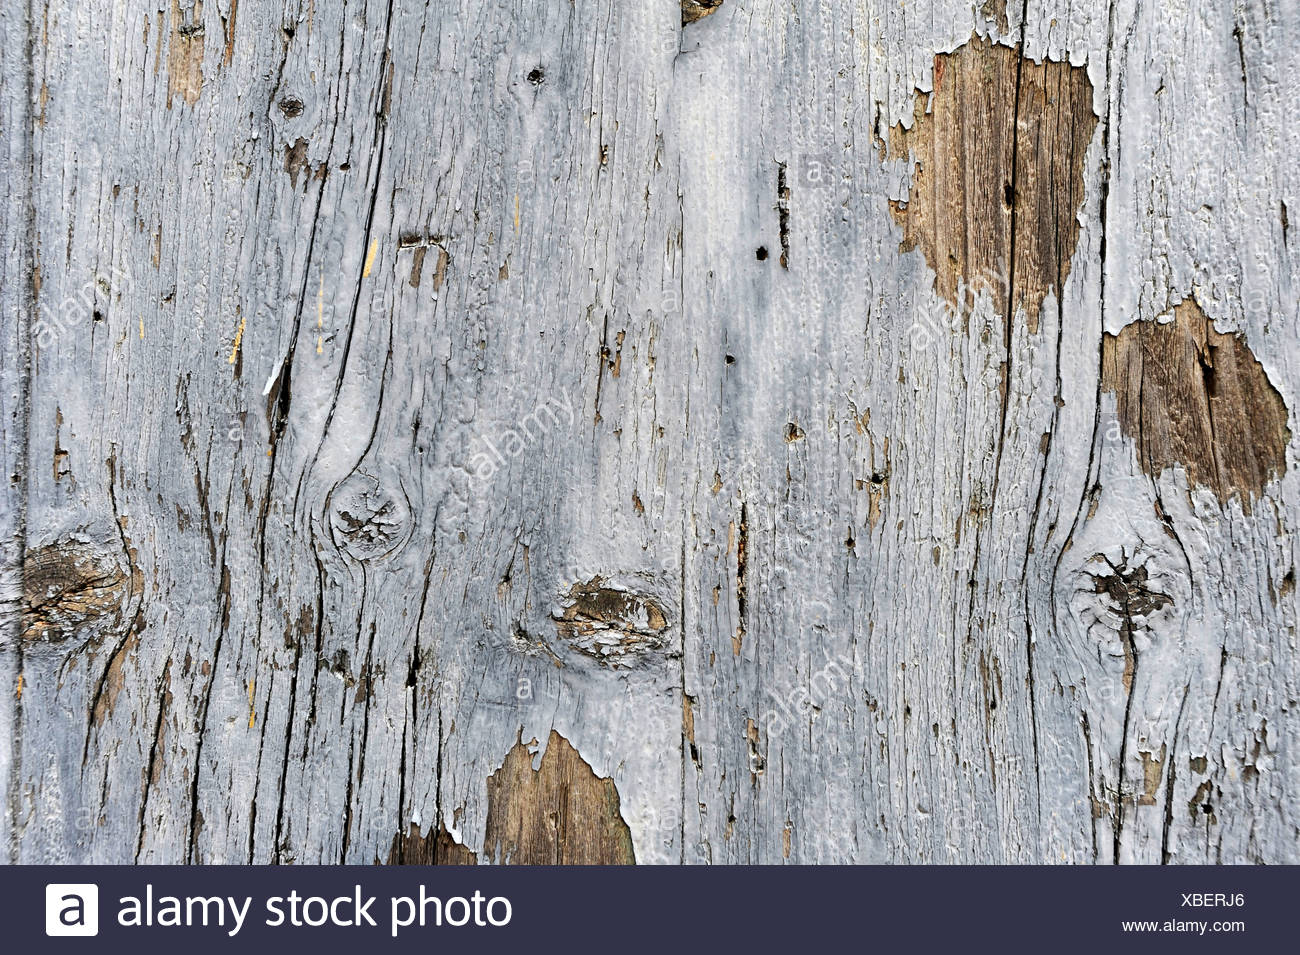 Italy, Elba, wood, Fare, flake off, old, structure, draft, plan, - Stock Image